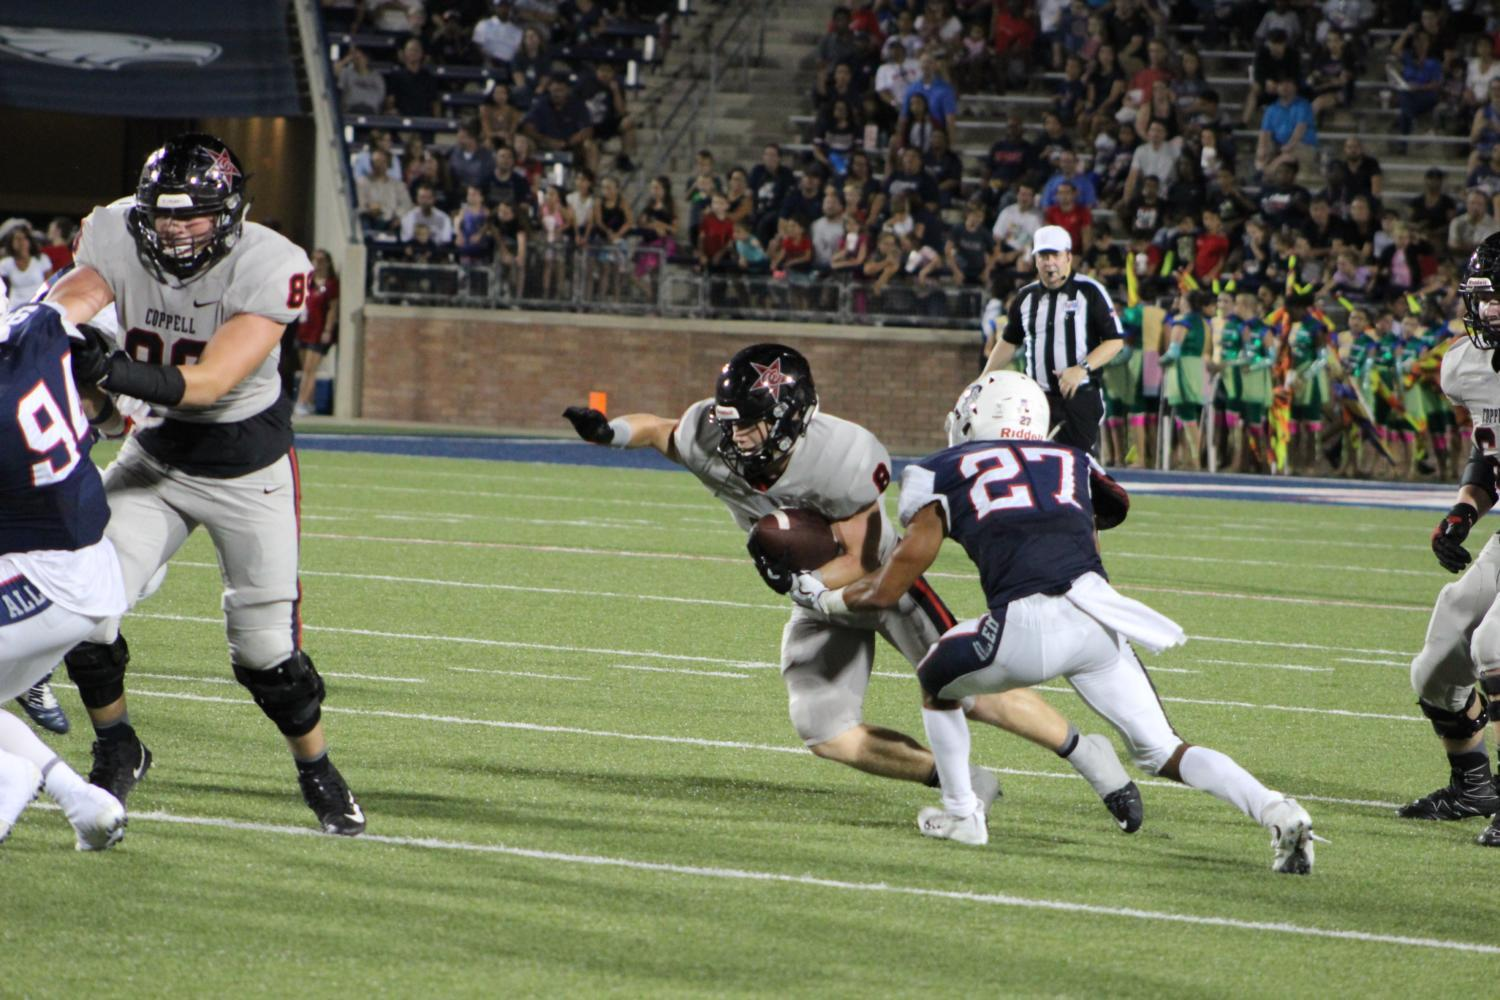 Coppell High School junior wide receiver Blake Jackson looks to run the ball after a pass from senior quarterback Brady McBride during the game against Allen Eagles at Allen Stadium. The Coppell Cowboys fell short to the  Allen Eagles 35-23.